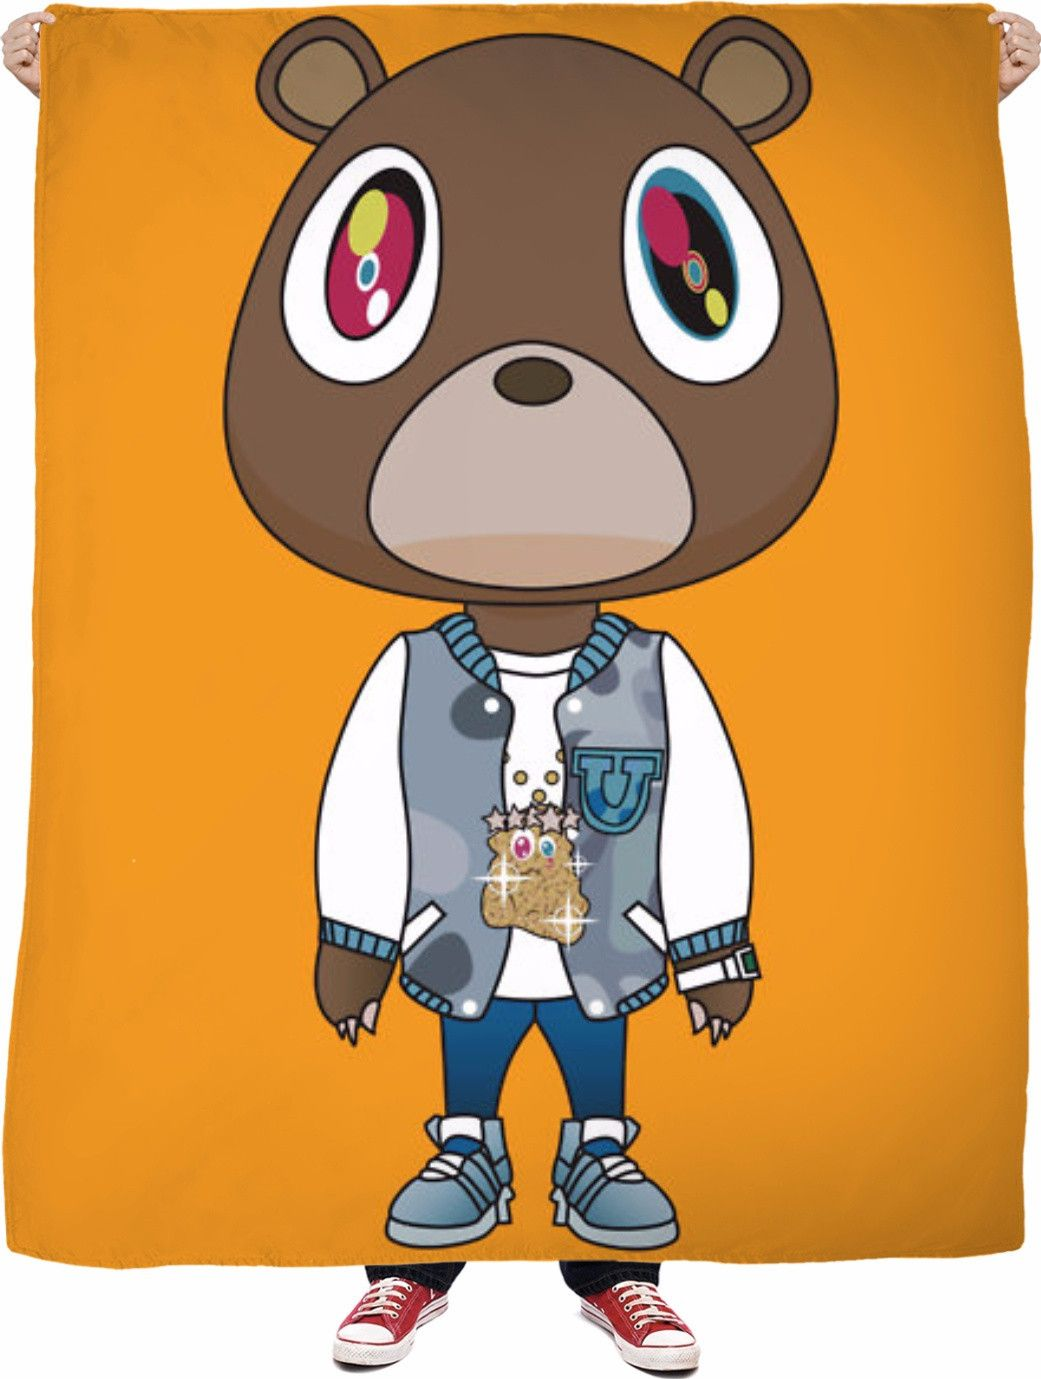 After School Flee Http Www Jakkoutthebxx Com Products After School Fleece Blanket Utm Campaign Social Kanye West Graduation Bear Bear Art Kanye West Bear